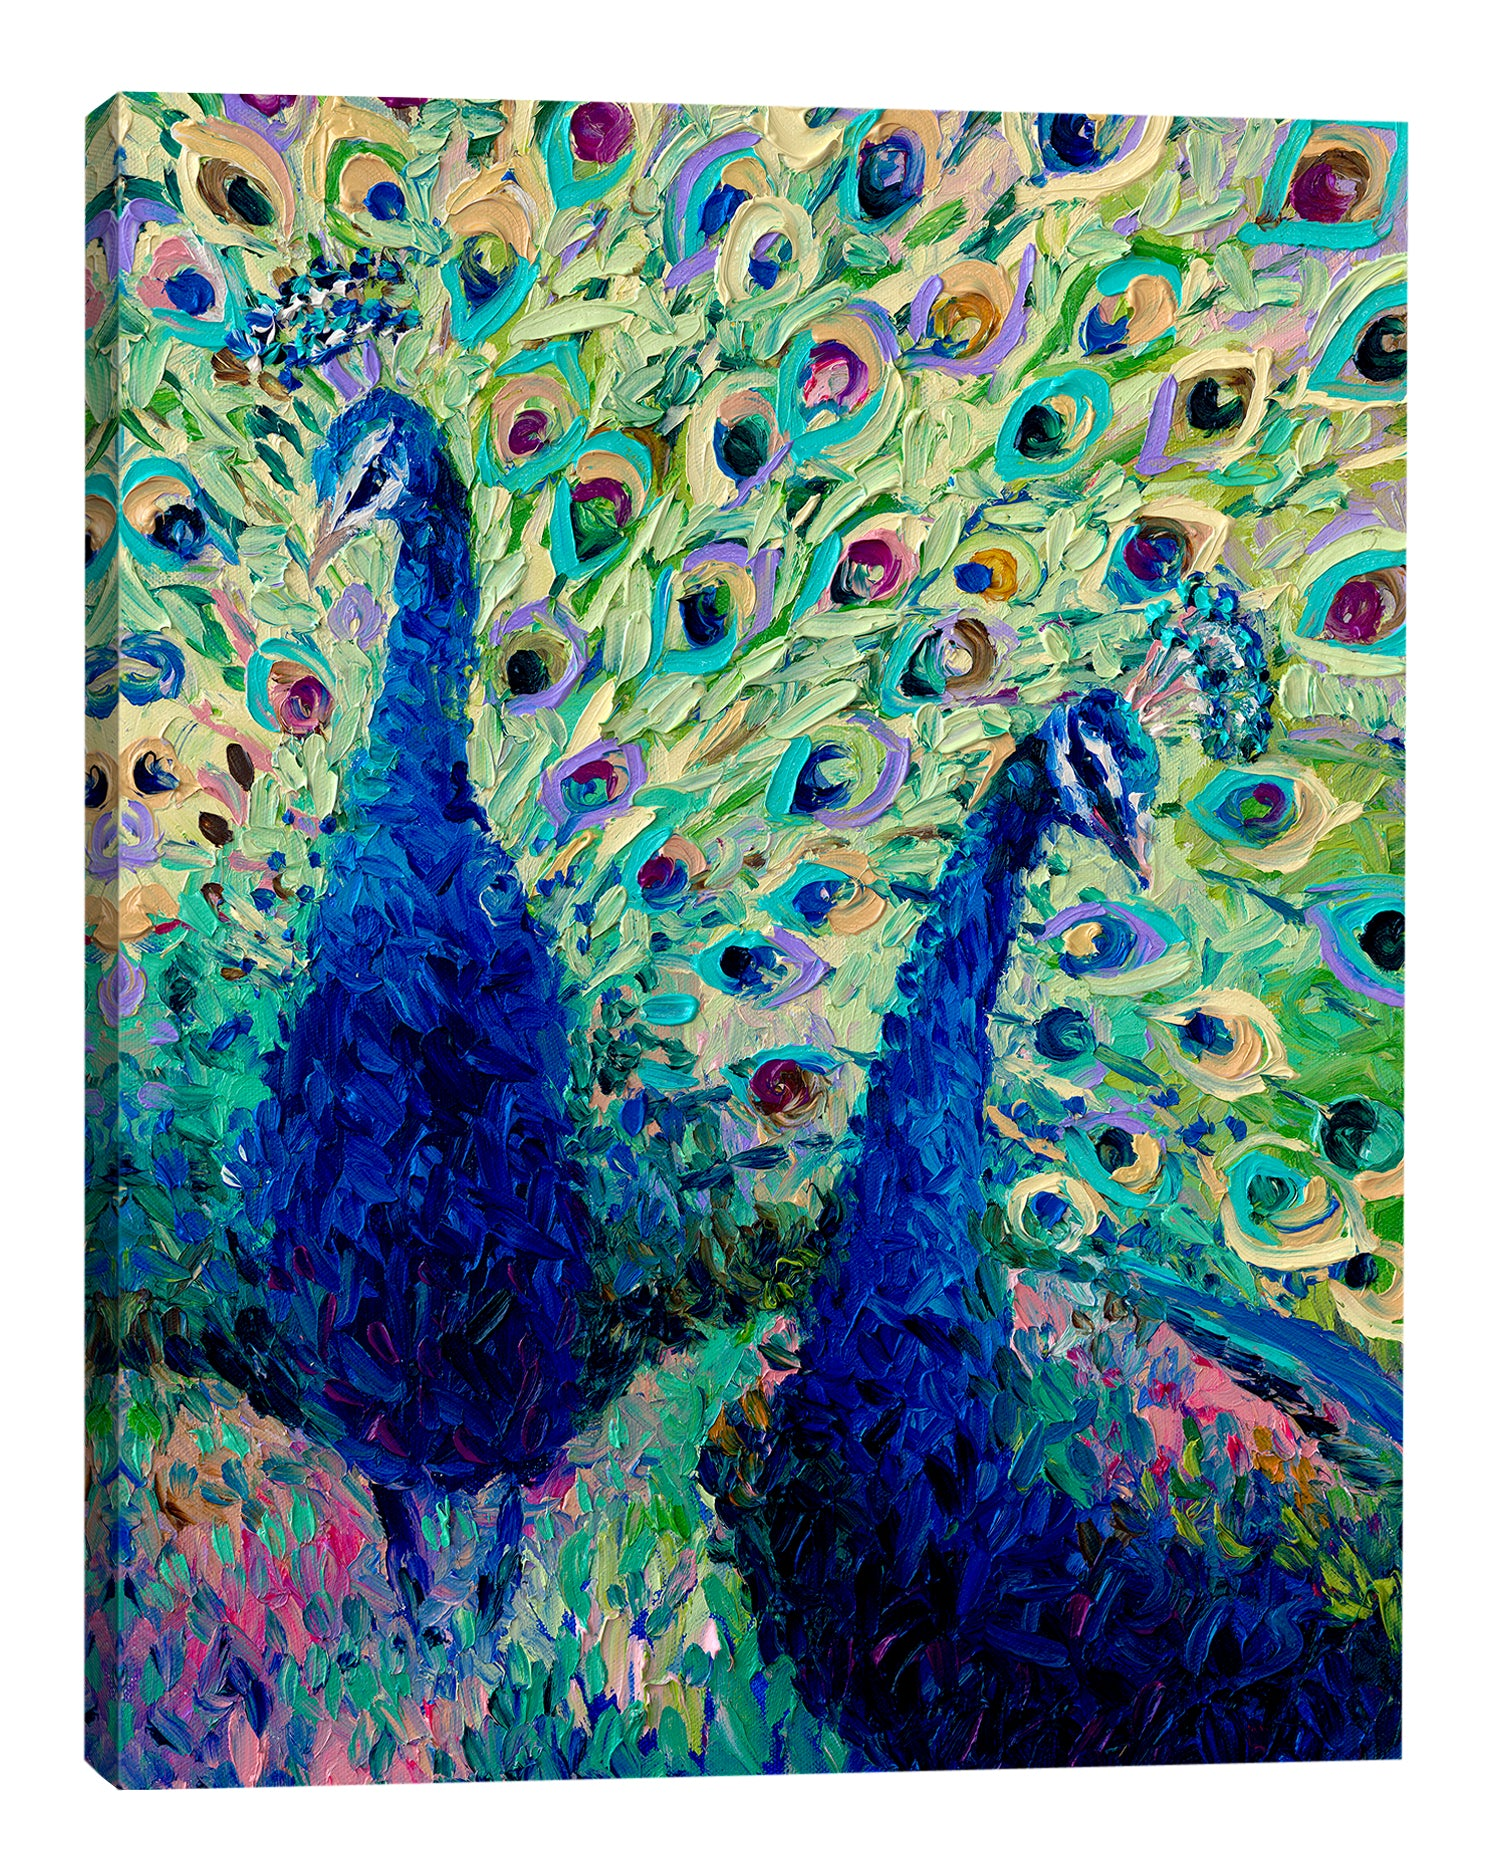 Iris-Scott,Modern & Contemporary,Animals,animals,animal,peacocks,peacock,teal,feathers,